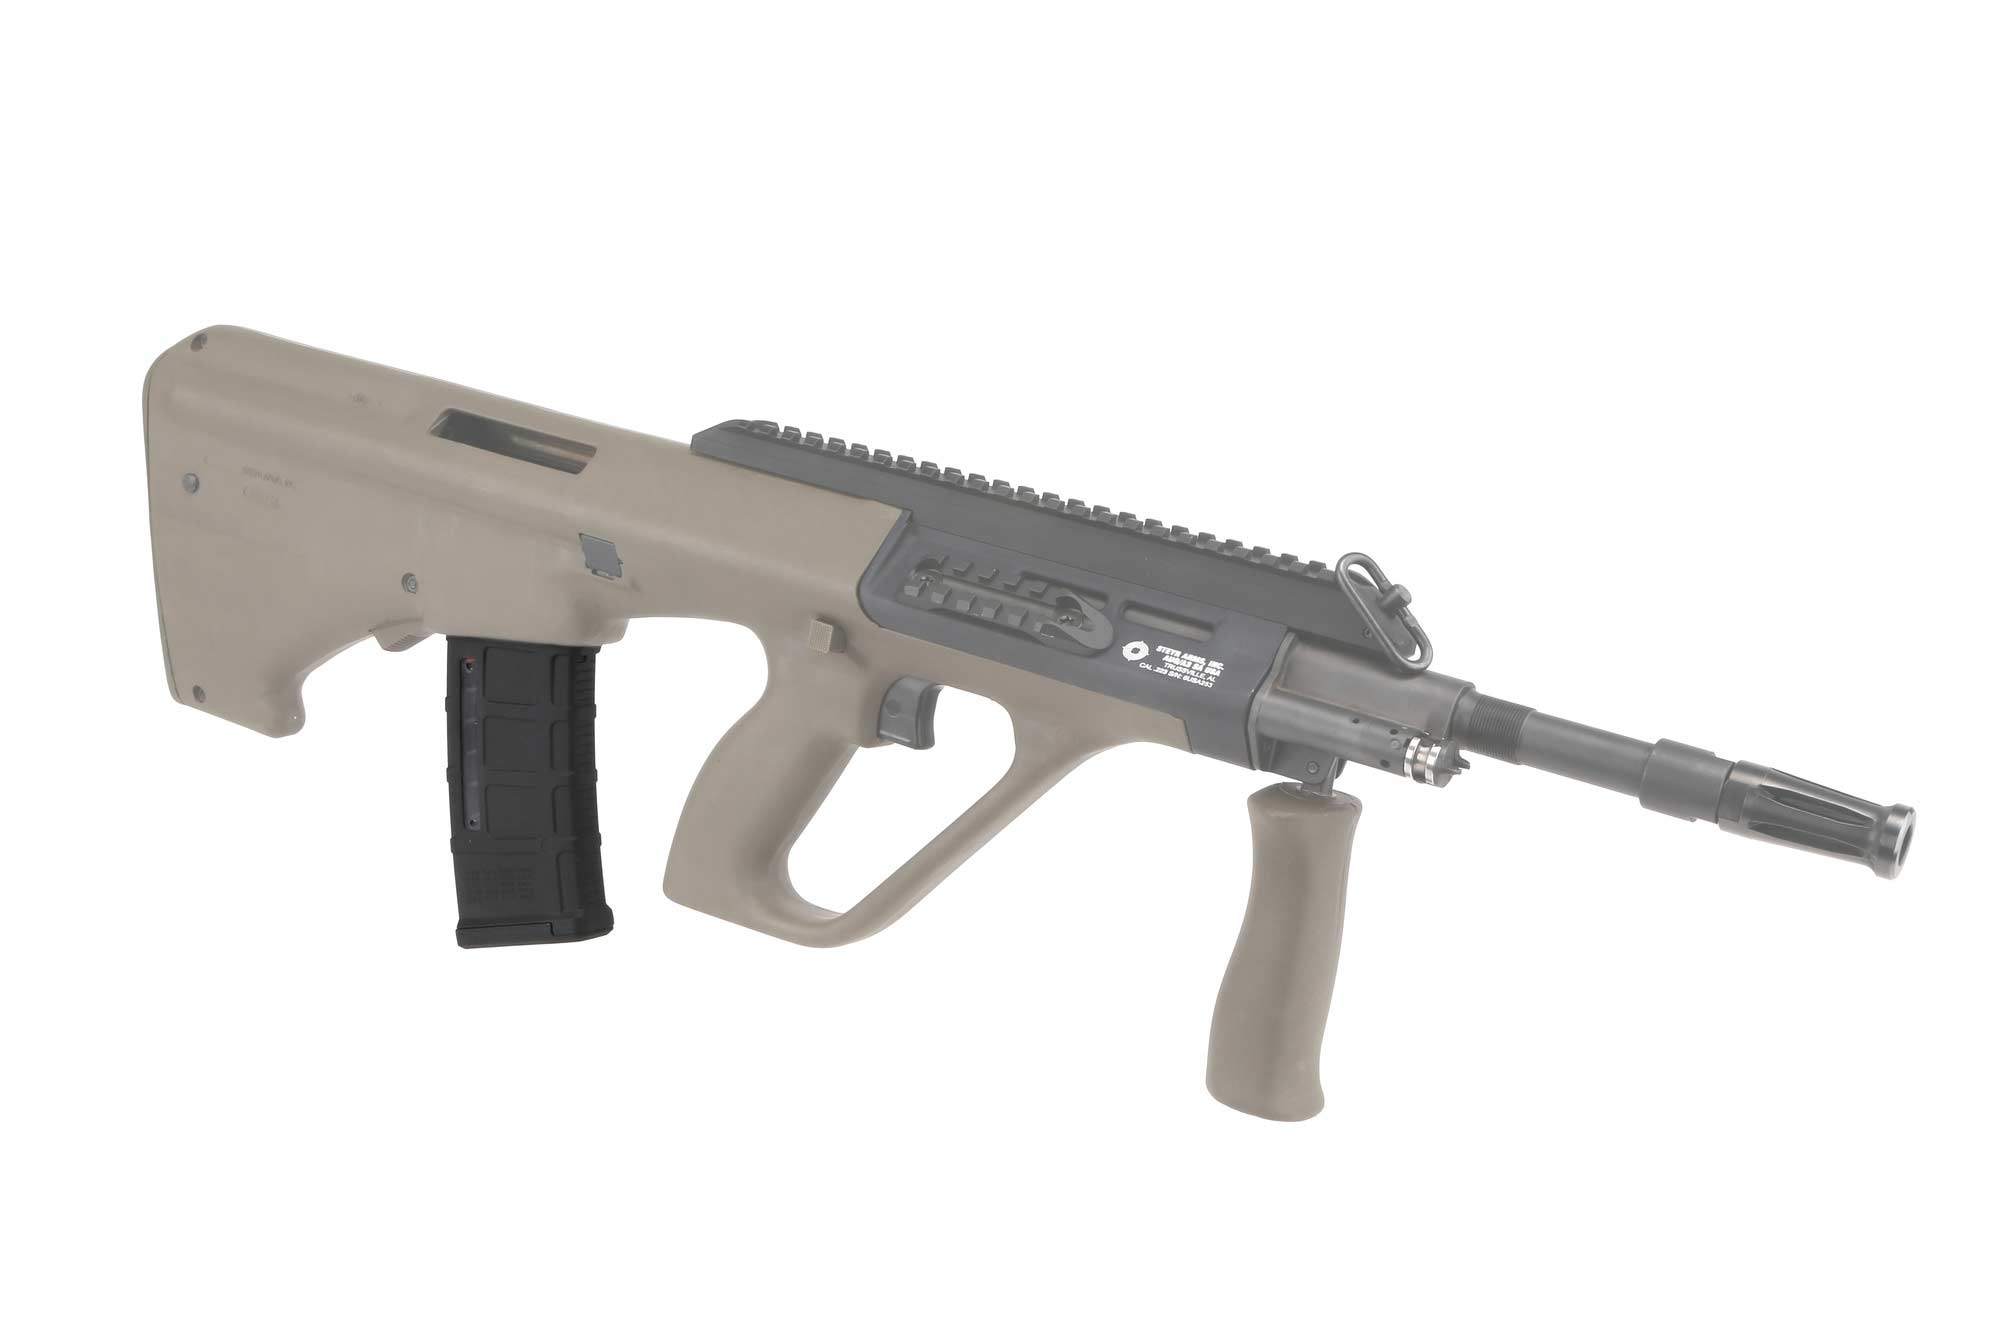 The Magpul Steyr AUG PMAG 30 AUS Gen M3 features a USGI Spec stainless steel follower spring